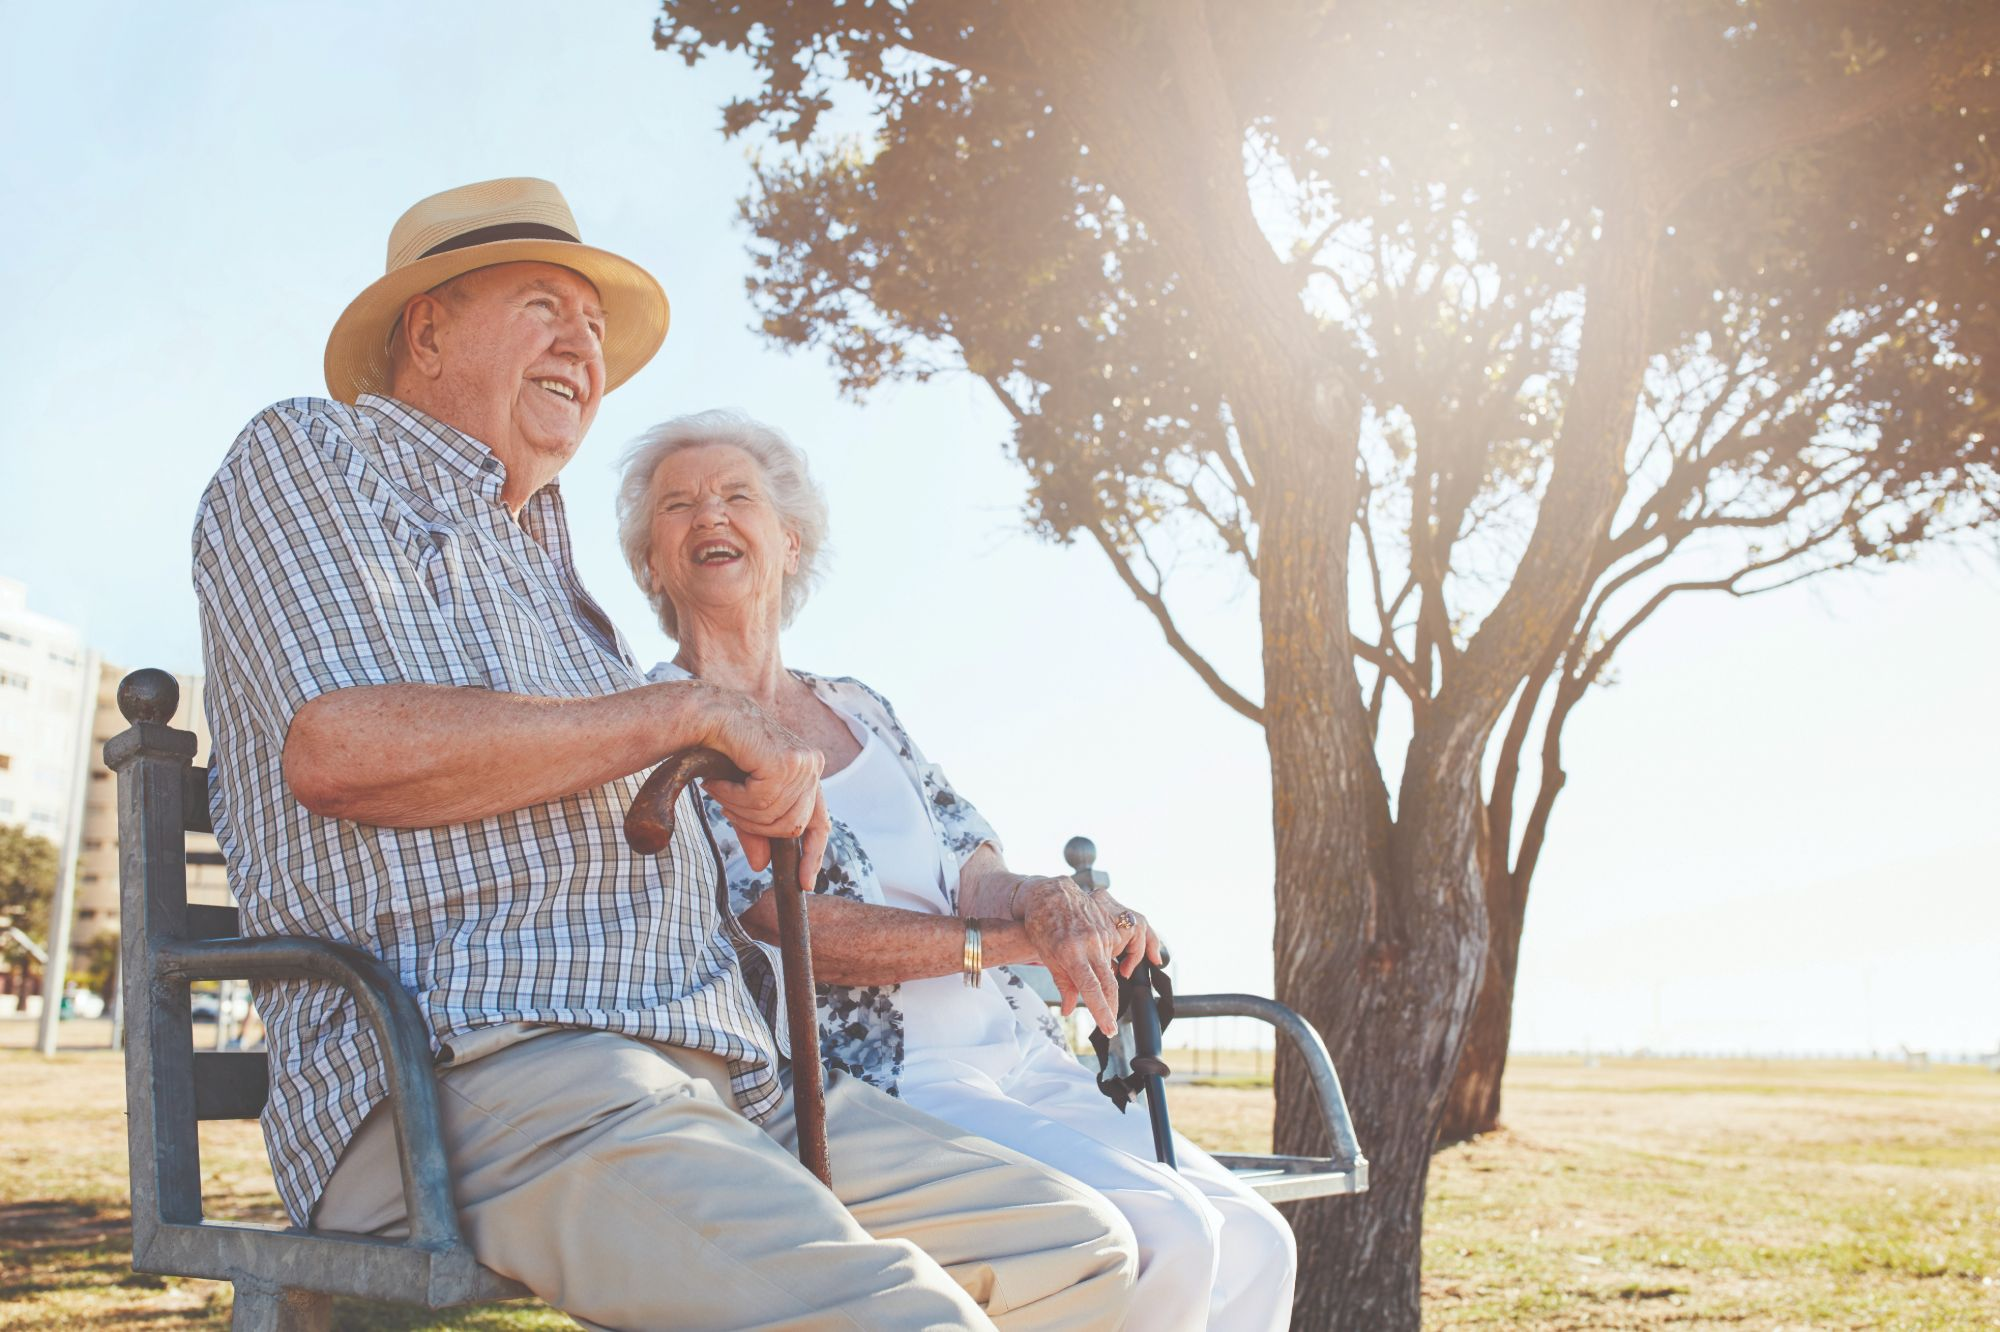 Male and female Flourish Senior Living residents smile and sit together on an outdoor bench next to a tree